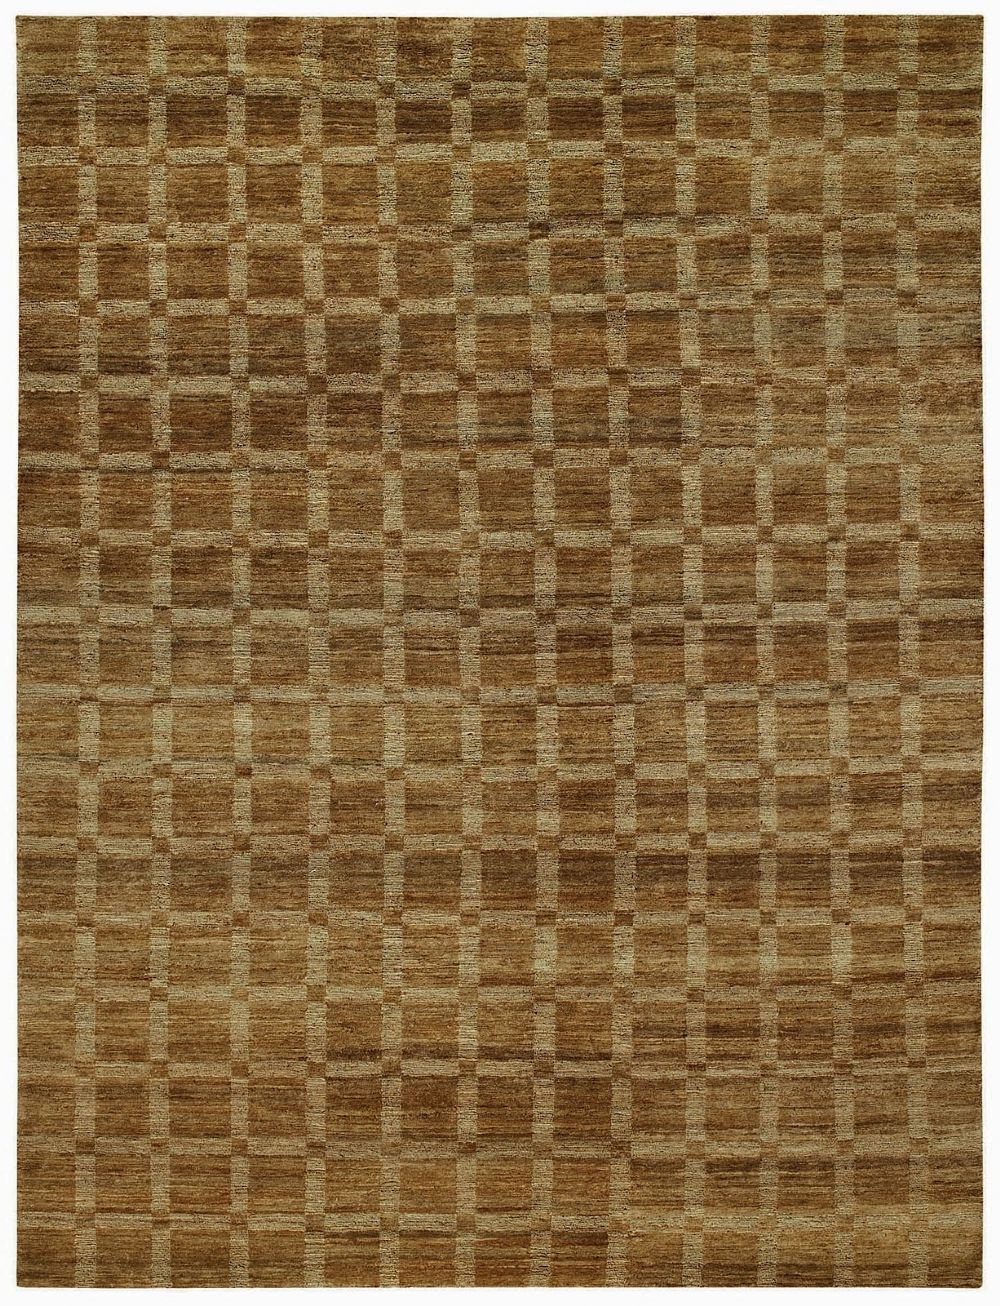 capel cypress-mosaic contemporary area rug collection